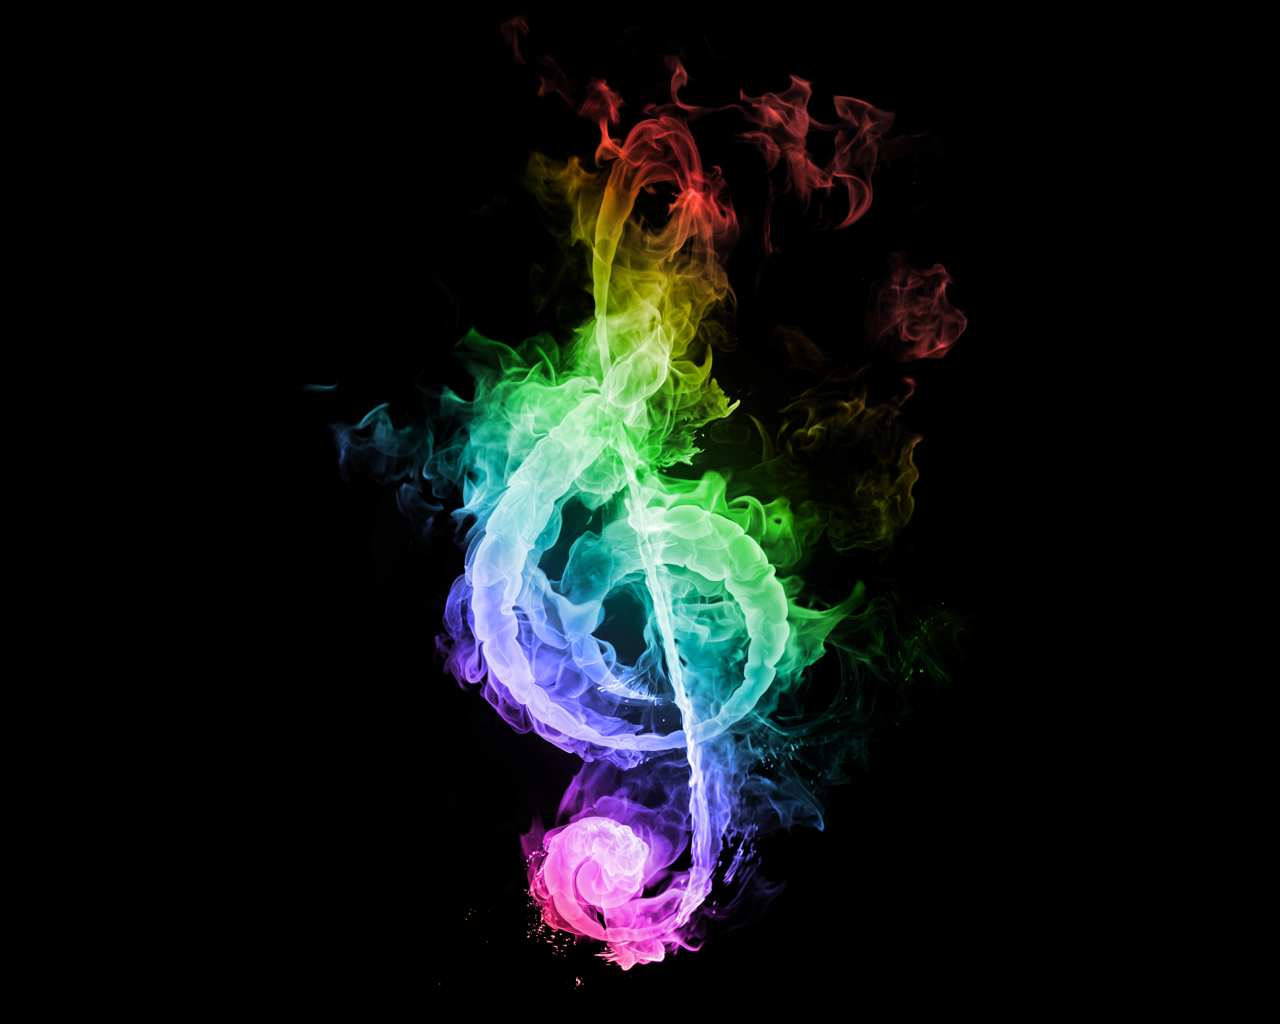 fire wallpaper music